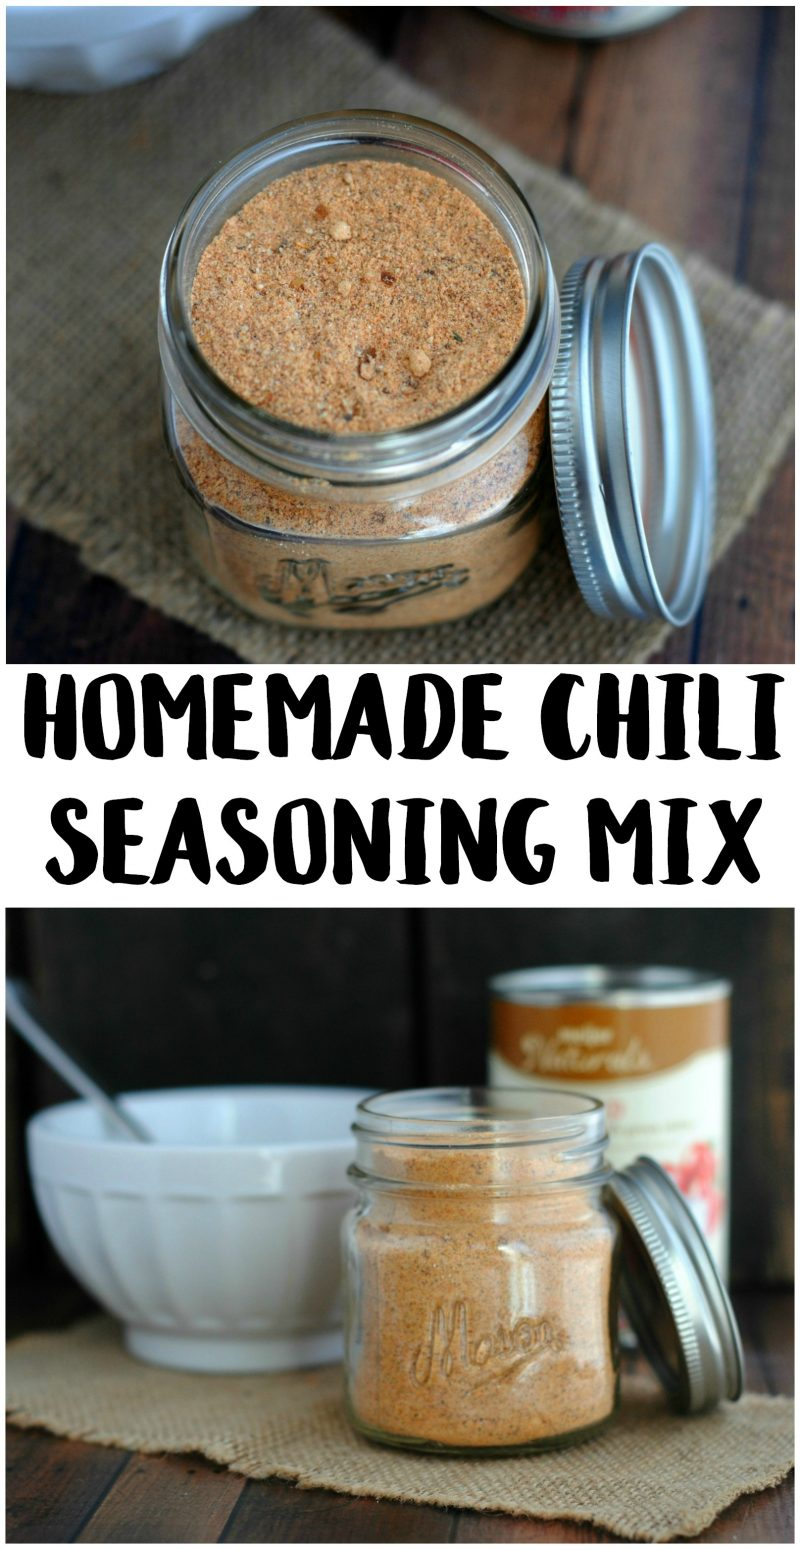 This DIY Homemade Chili Seasoning Mix recipe is the best- it's so easy and delicious! Make a whole batch of it and keep it in the pantry for an easy week night meal solution.